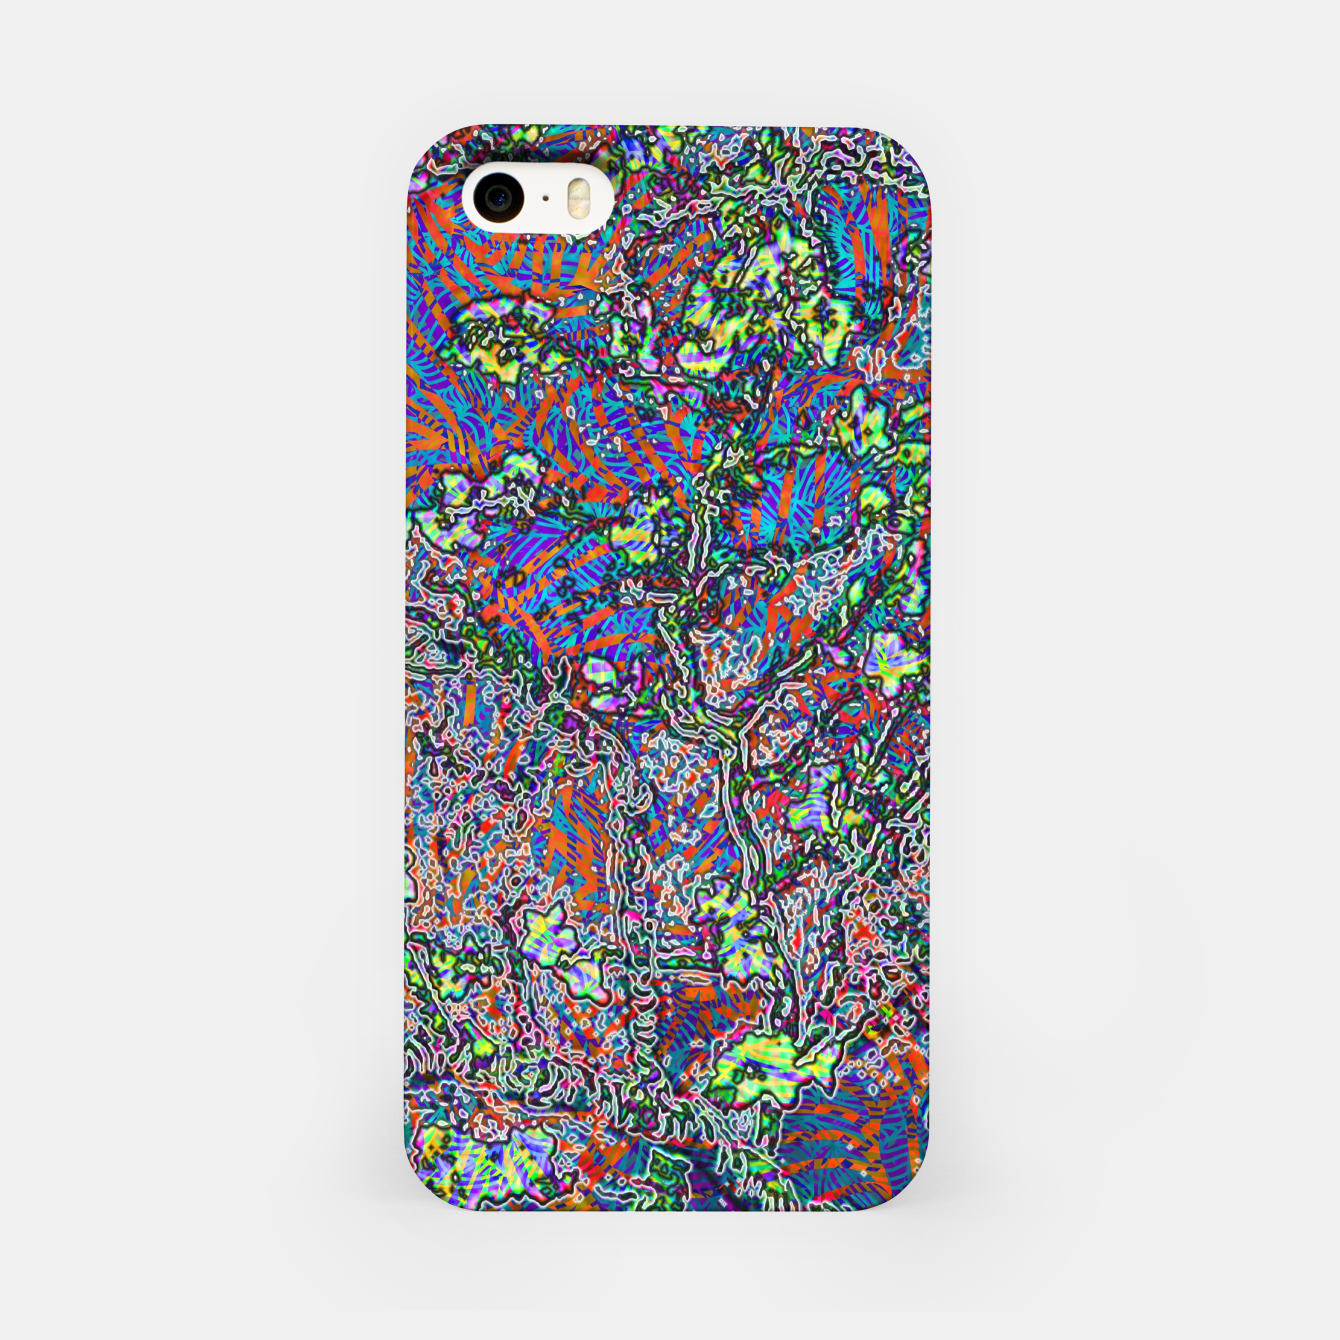 Image of ab iPhone Case - Live Heroes